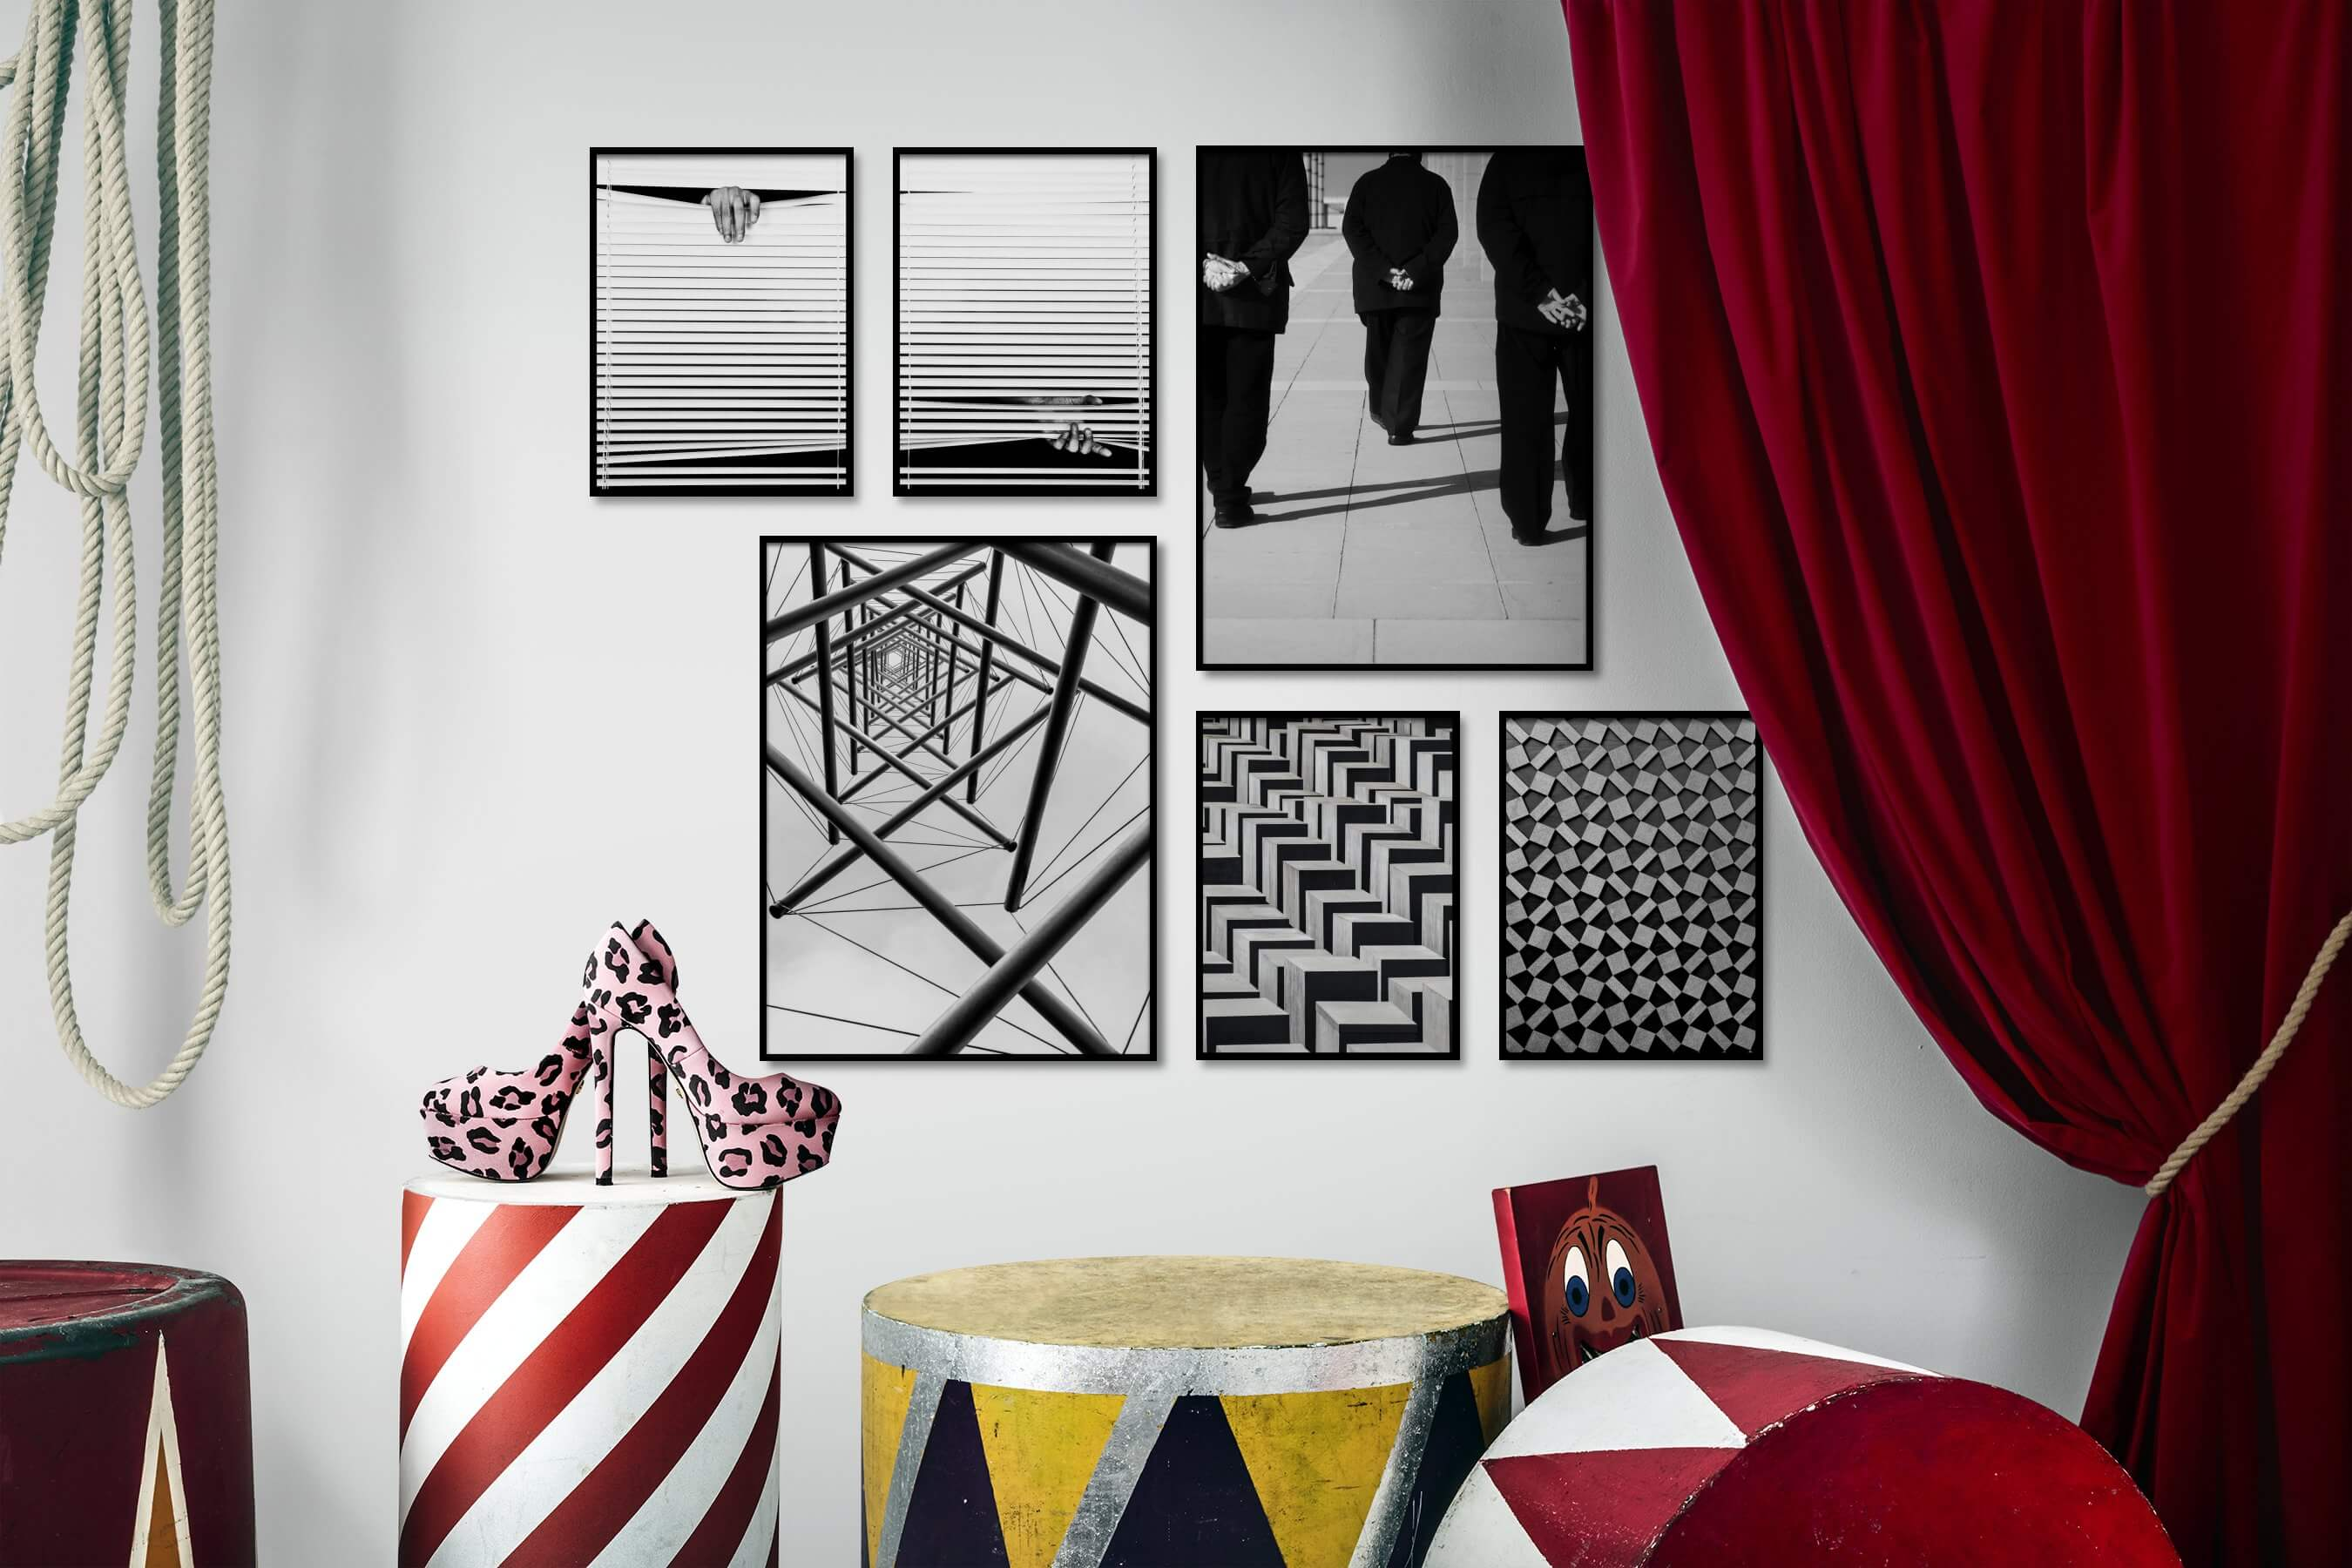 Gallery wall idea with six framed pictures arranged on a wall depicting Black & White, For the Moderate, Artsy, and For the Maximalist